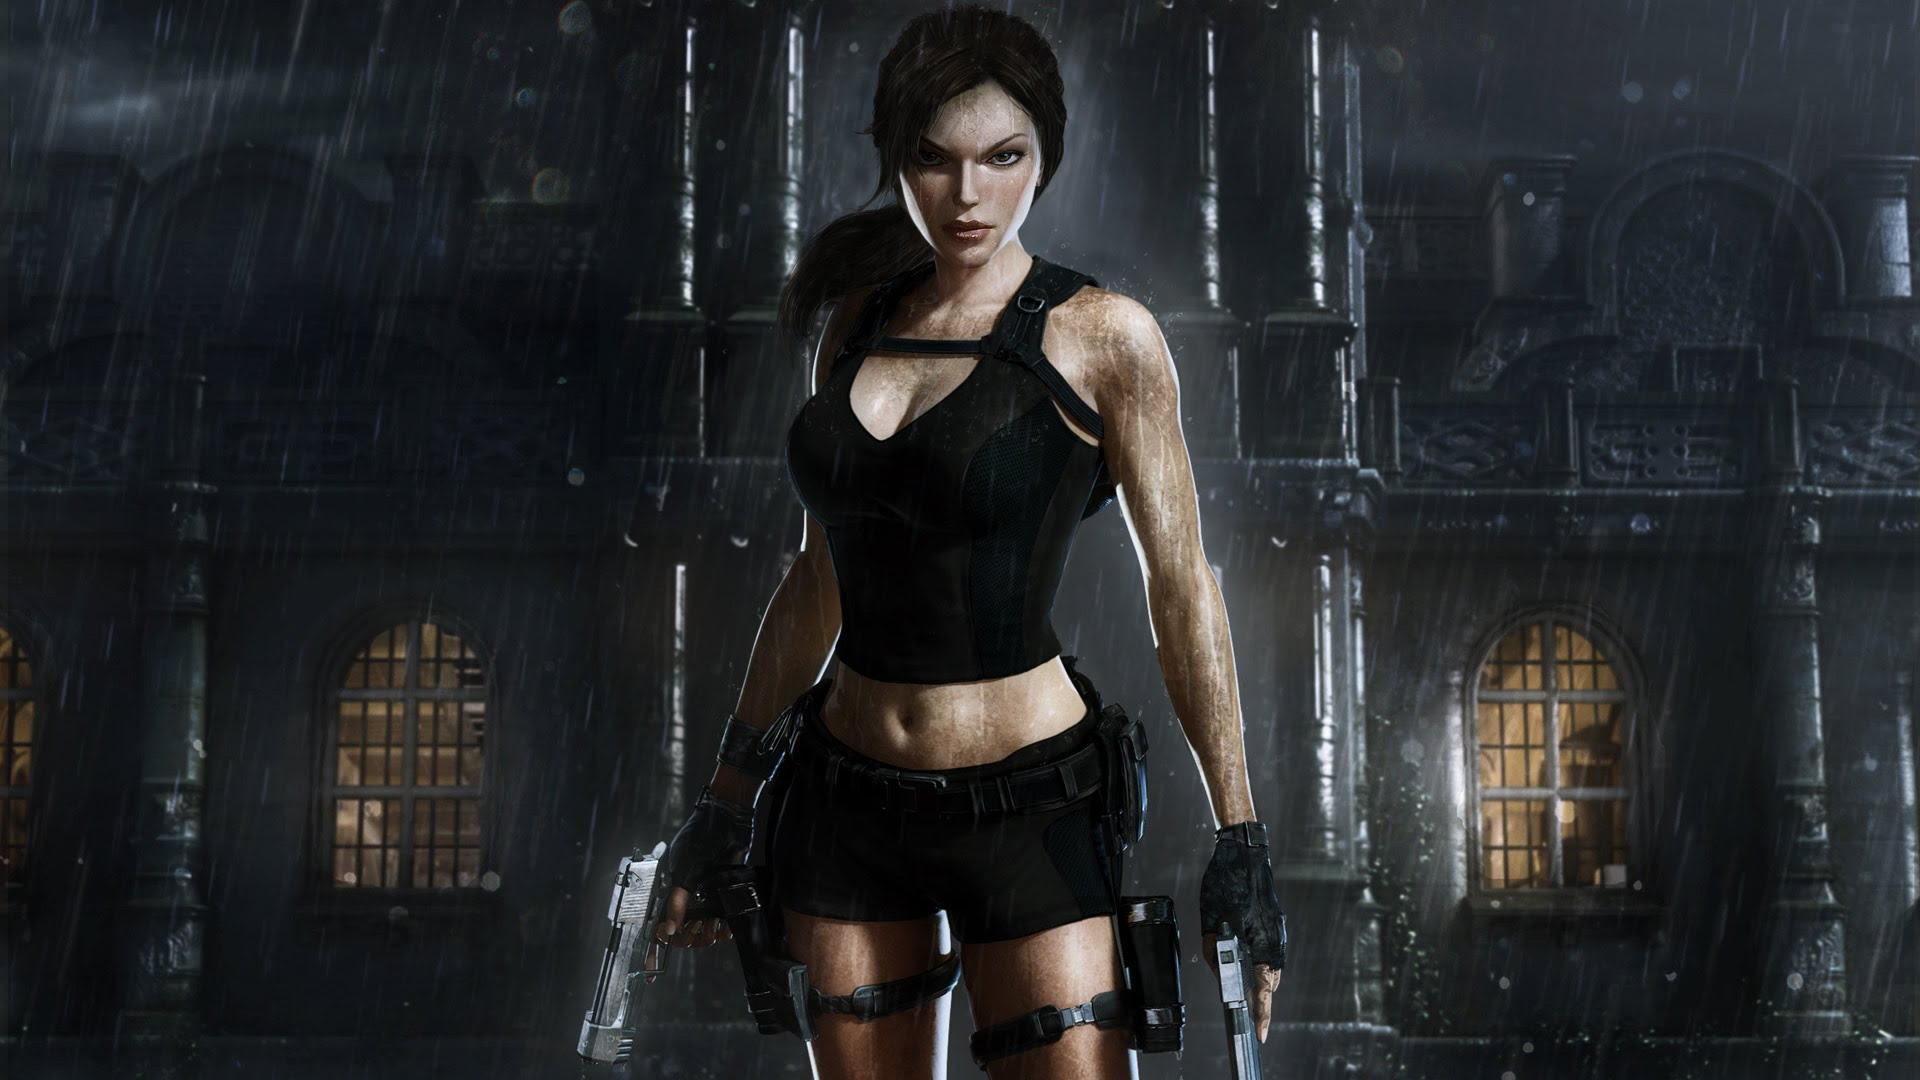 Lara Croft (2008)